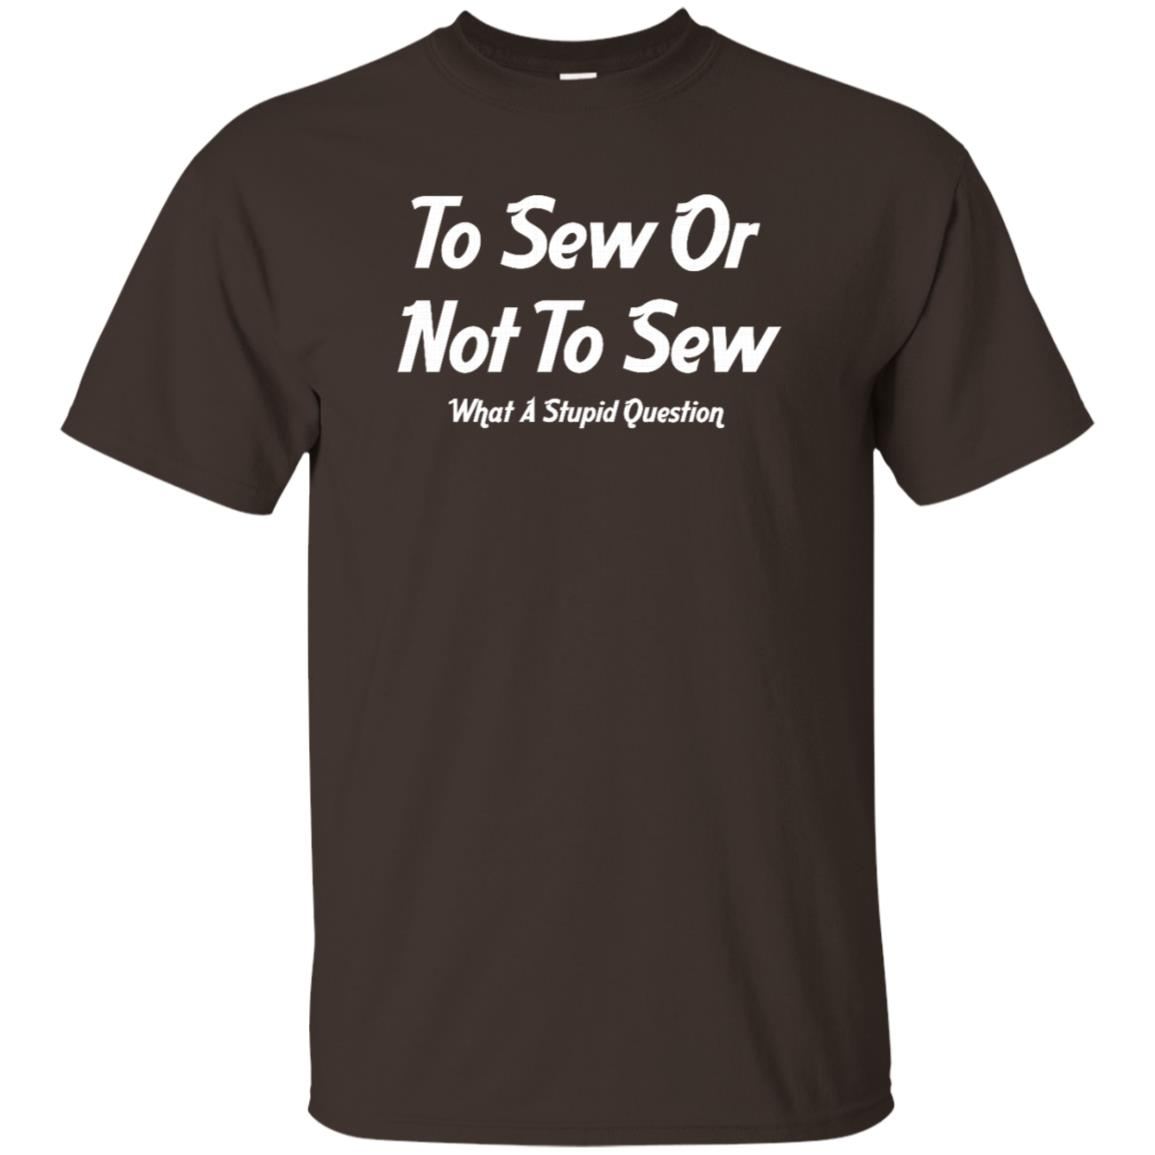 To Sew Or Not To Sew What Stupid Question Unisex Short Sleeve